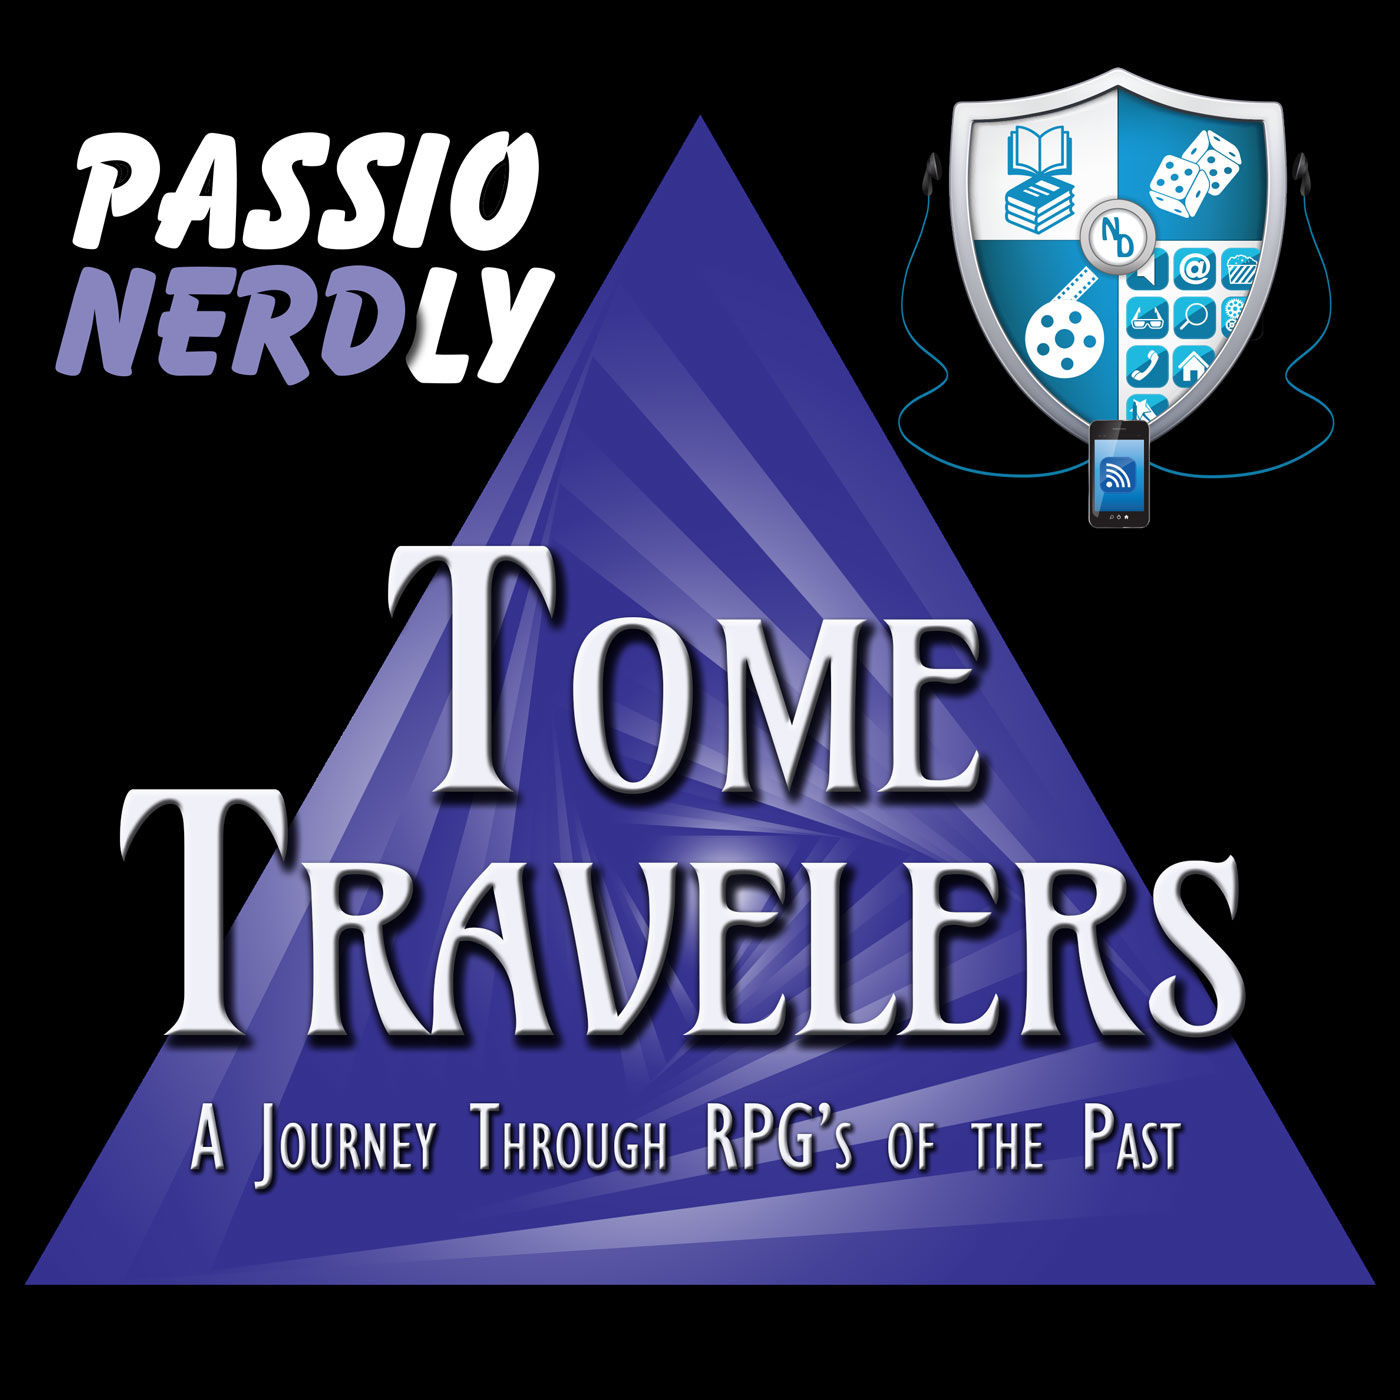 Tome Travelers